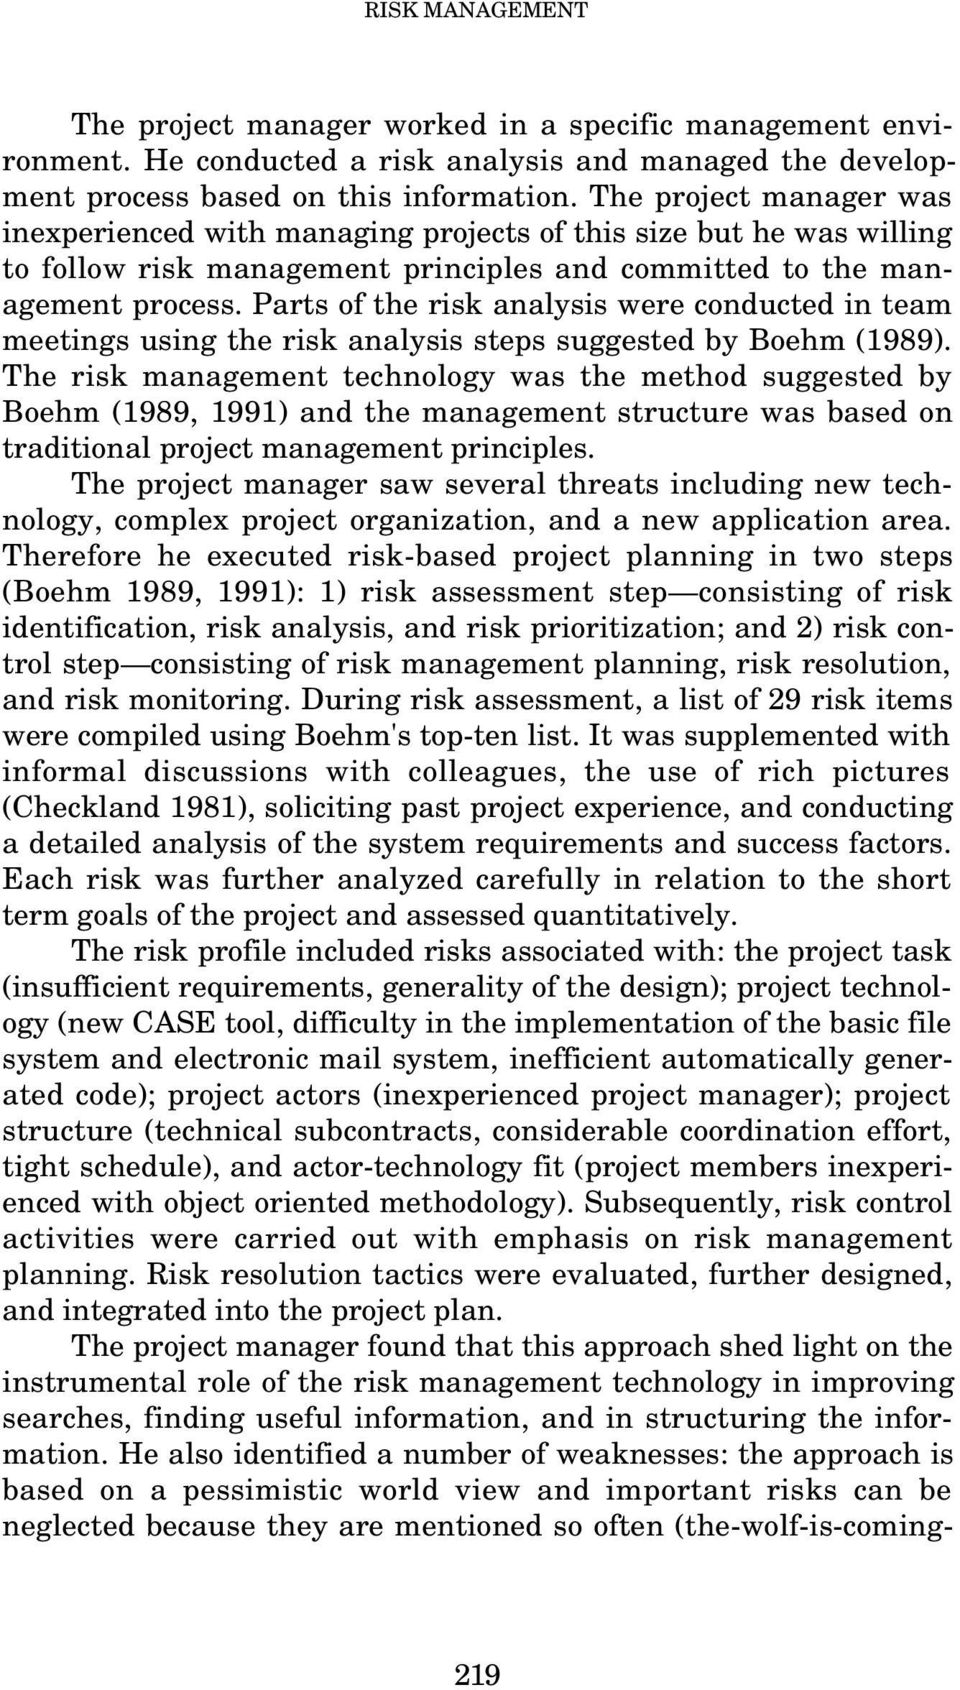 Parts of the risk analysis were conducted in team meetings using the risk analysis steps suggested by Boehm (1989).